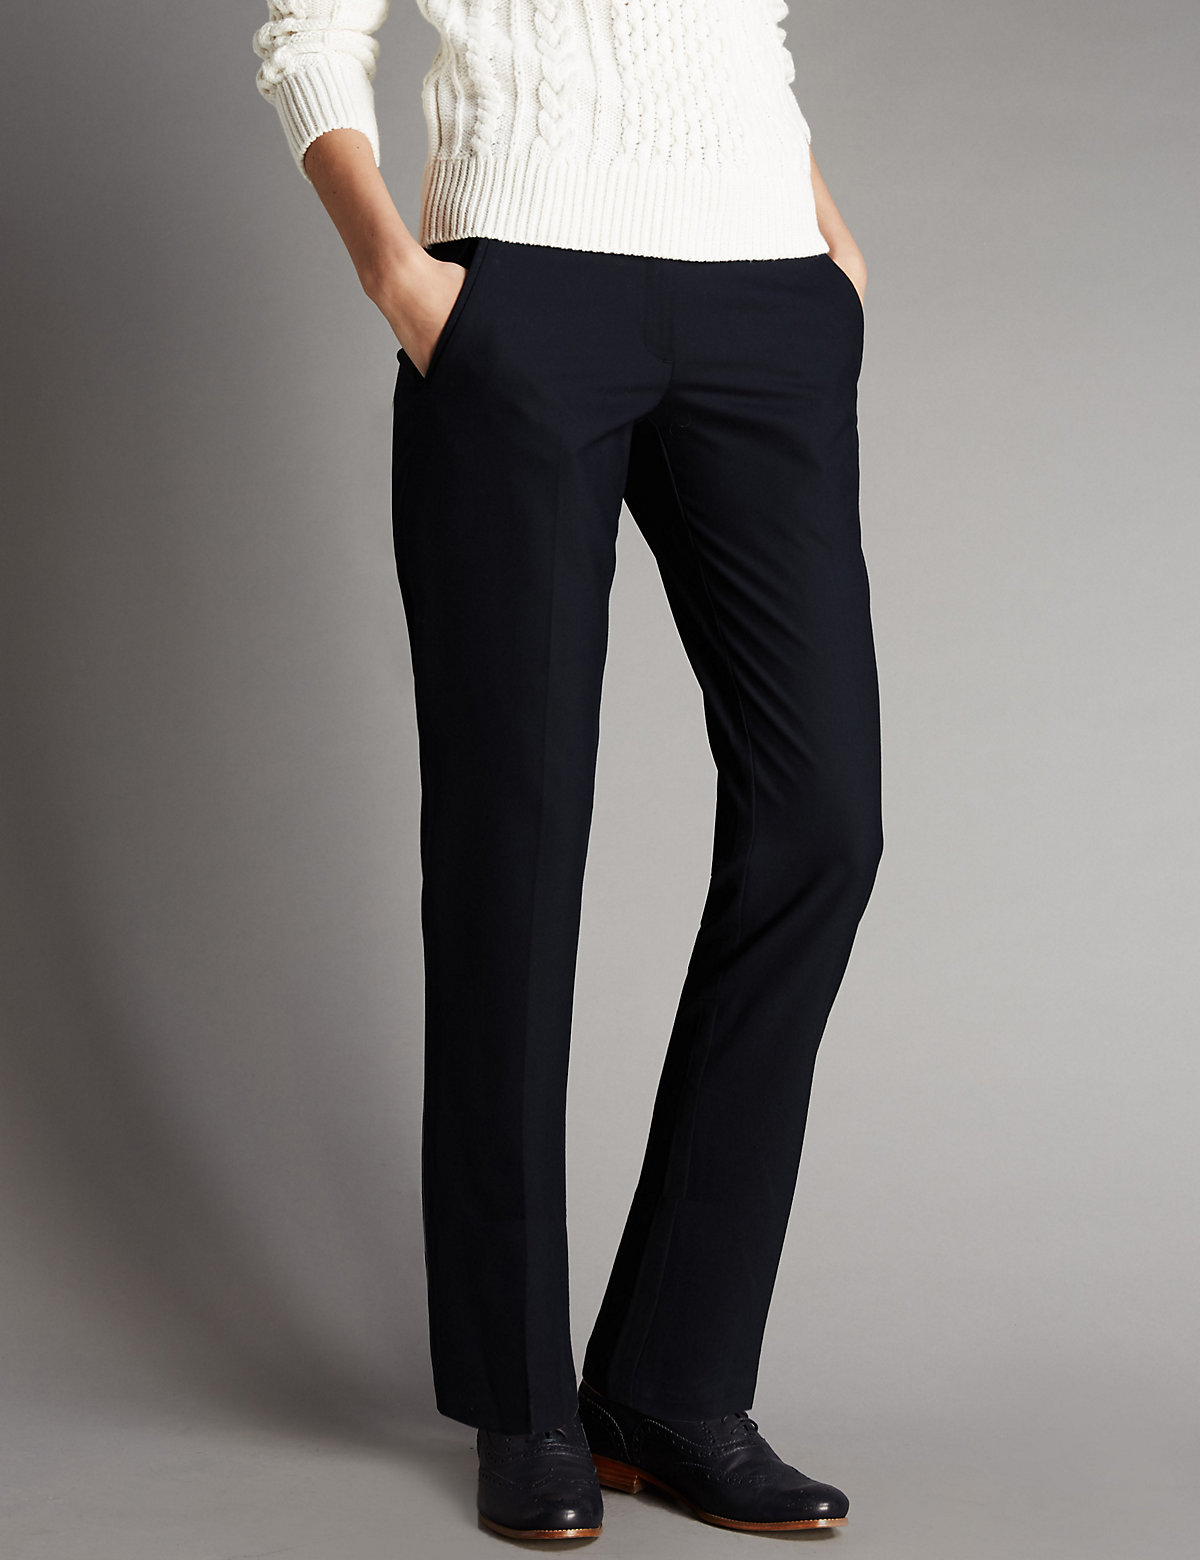 Autograph Jet Pocket Seam Tapered Leg Trousers with Wool